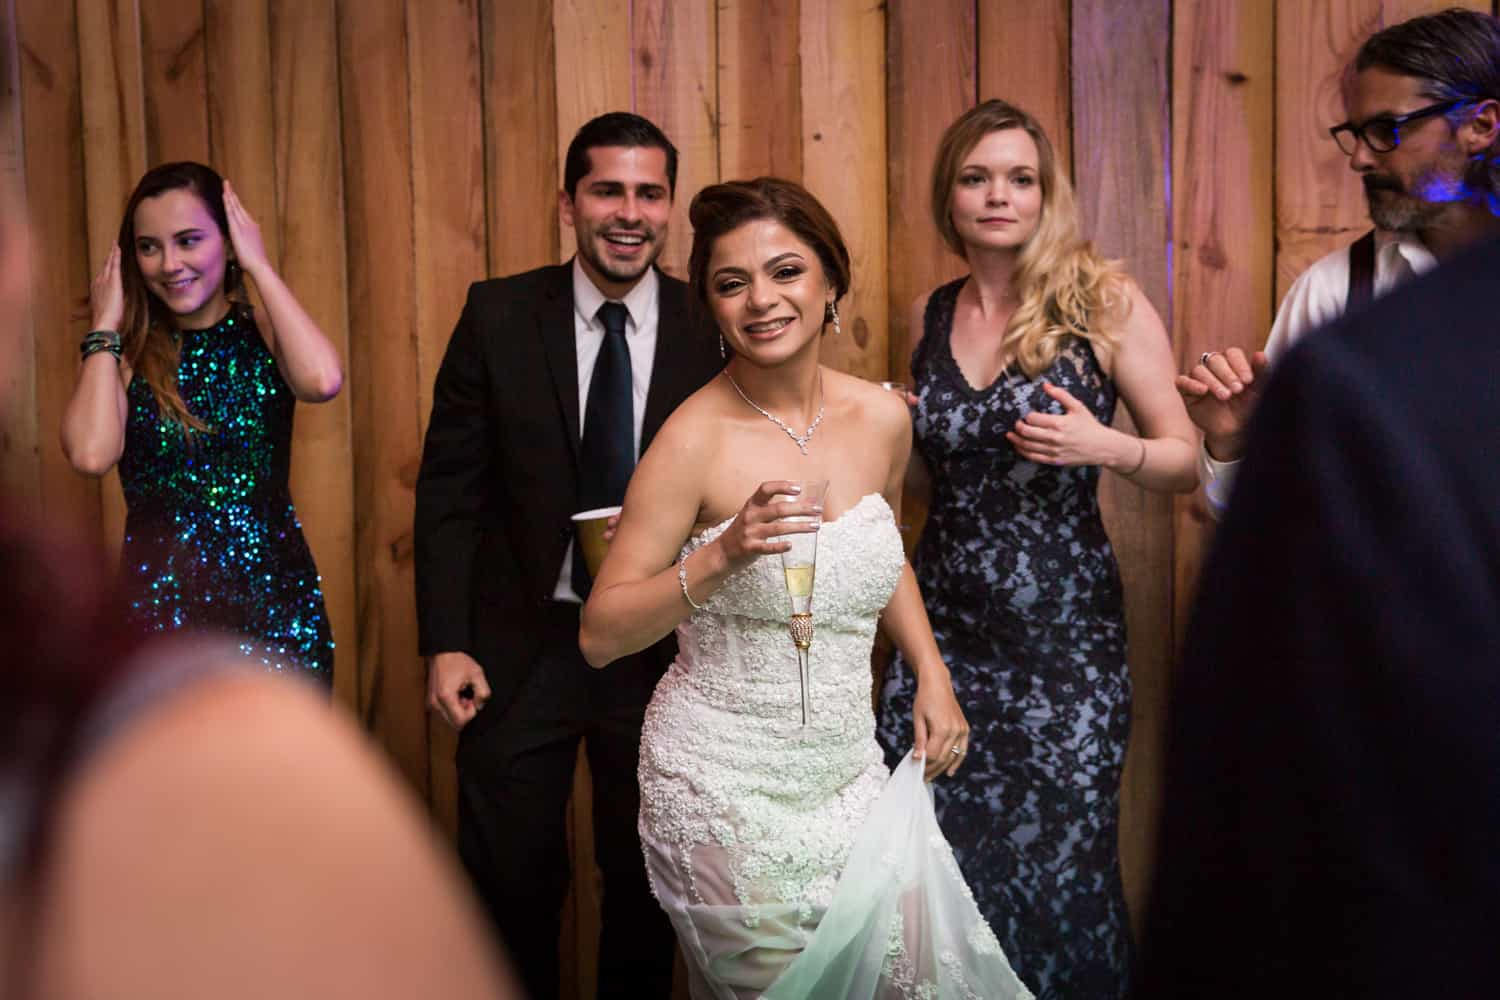 Bride dancing with guests during Florida wedding reception